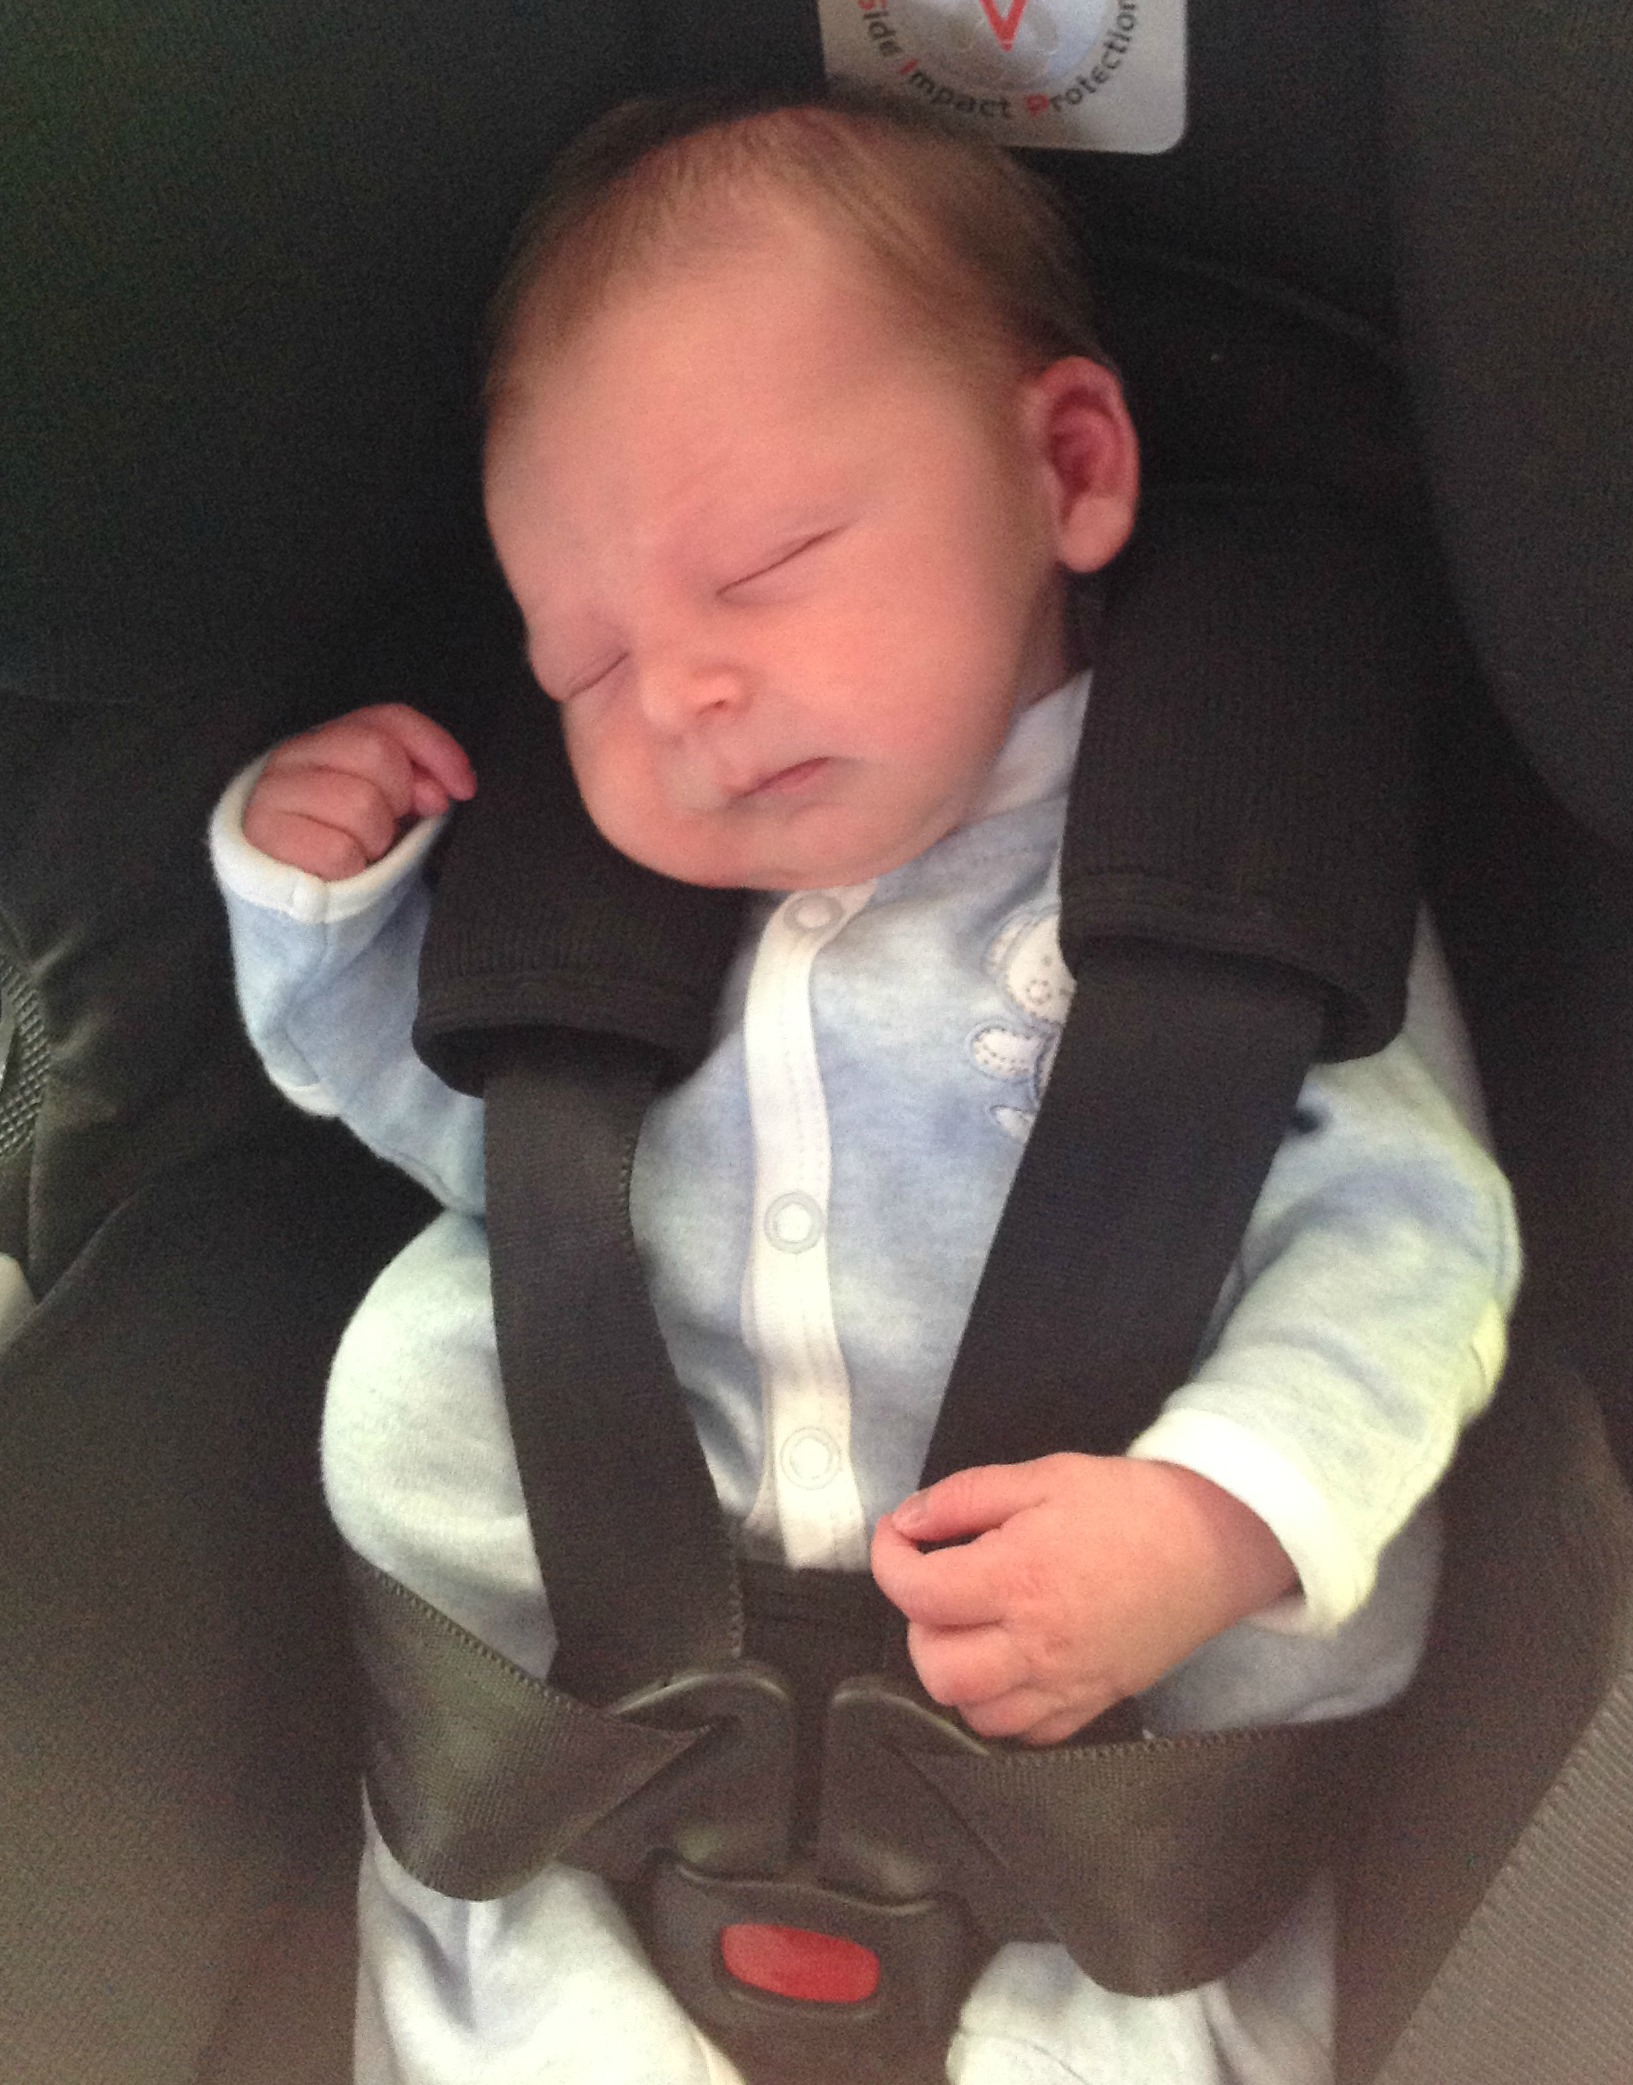 my baby nearly died in his car seat